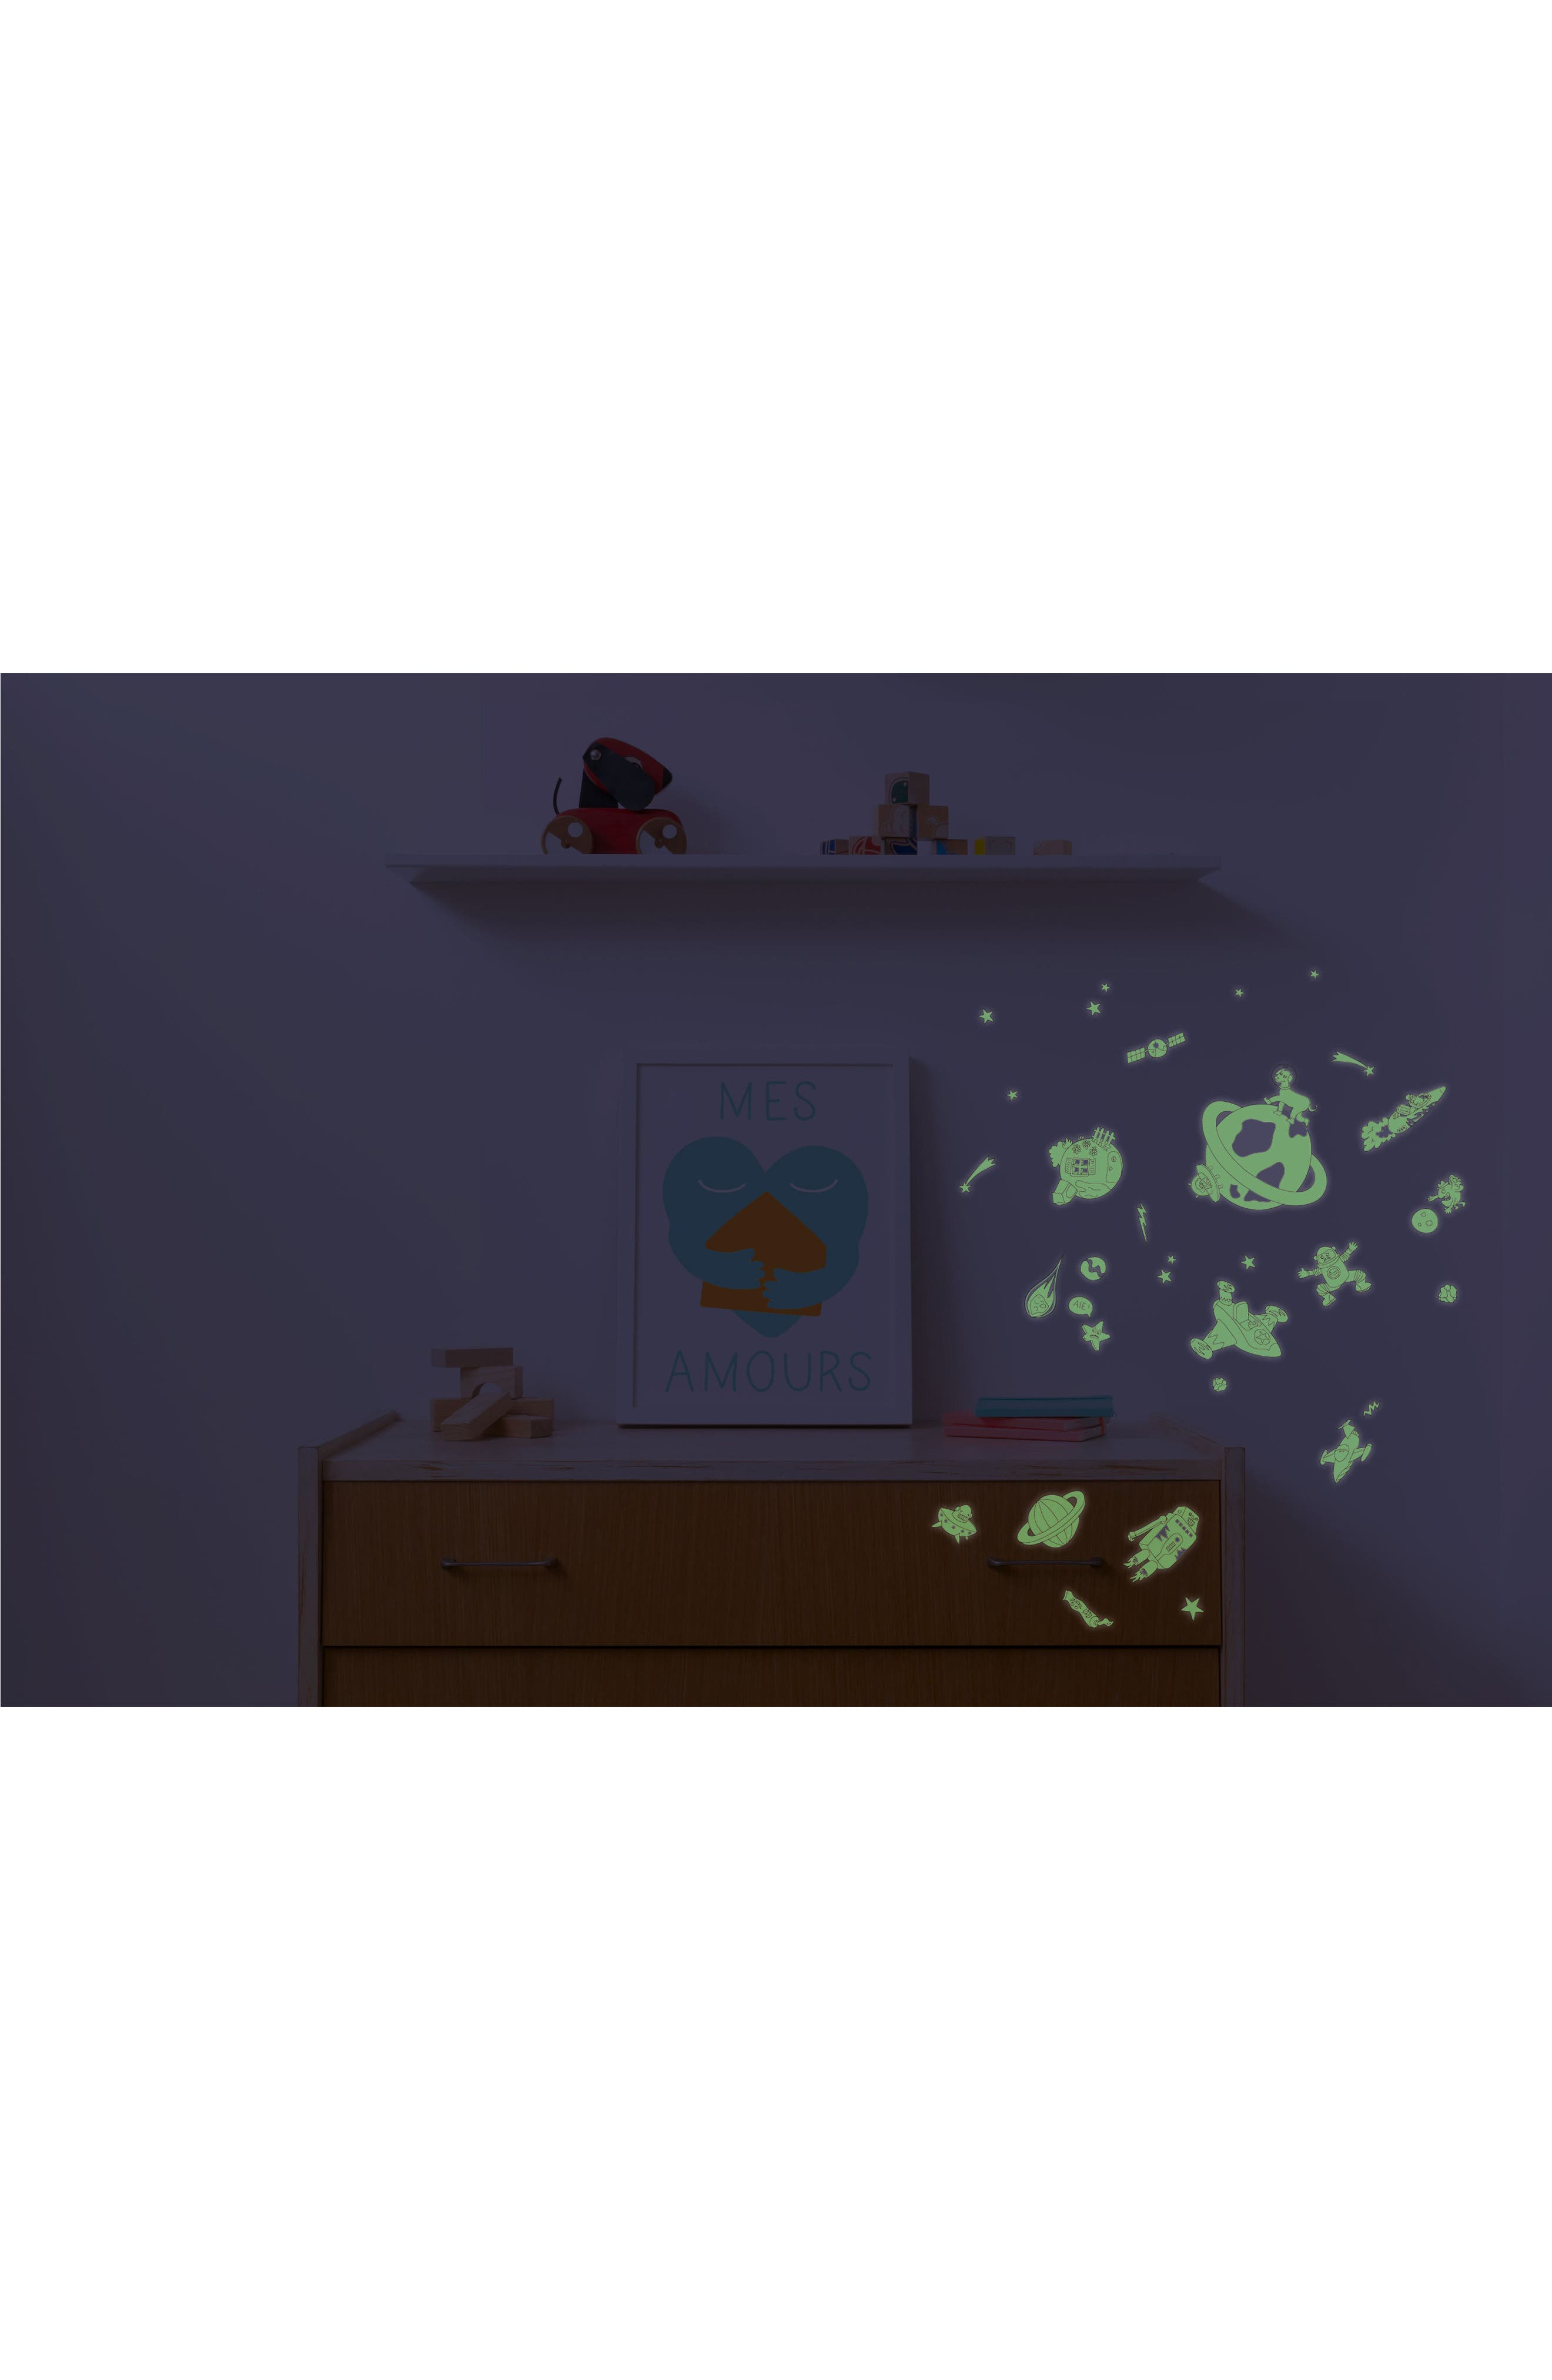 Set of 100 Cosmos Glow in the Dark Wall Stickers,                             Alternate thumbnail 2, color,                             Cosmos